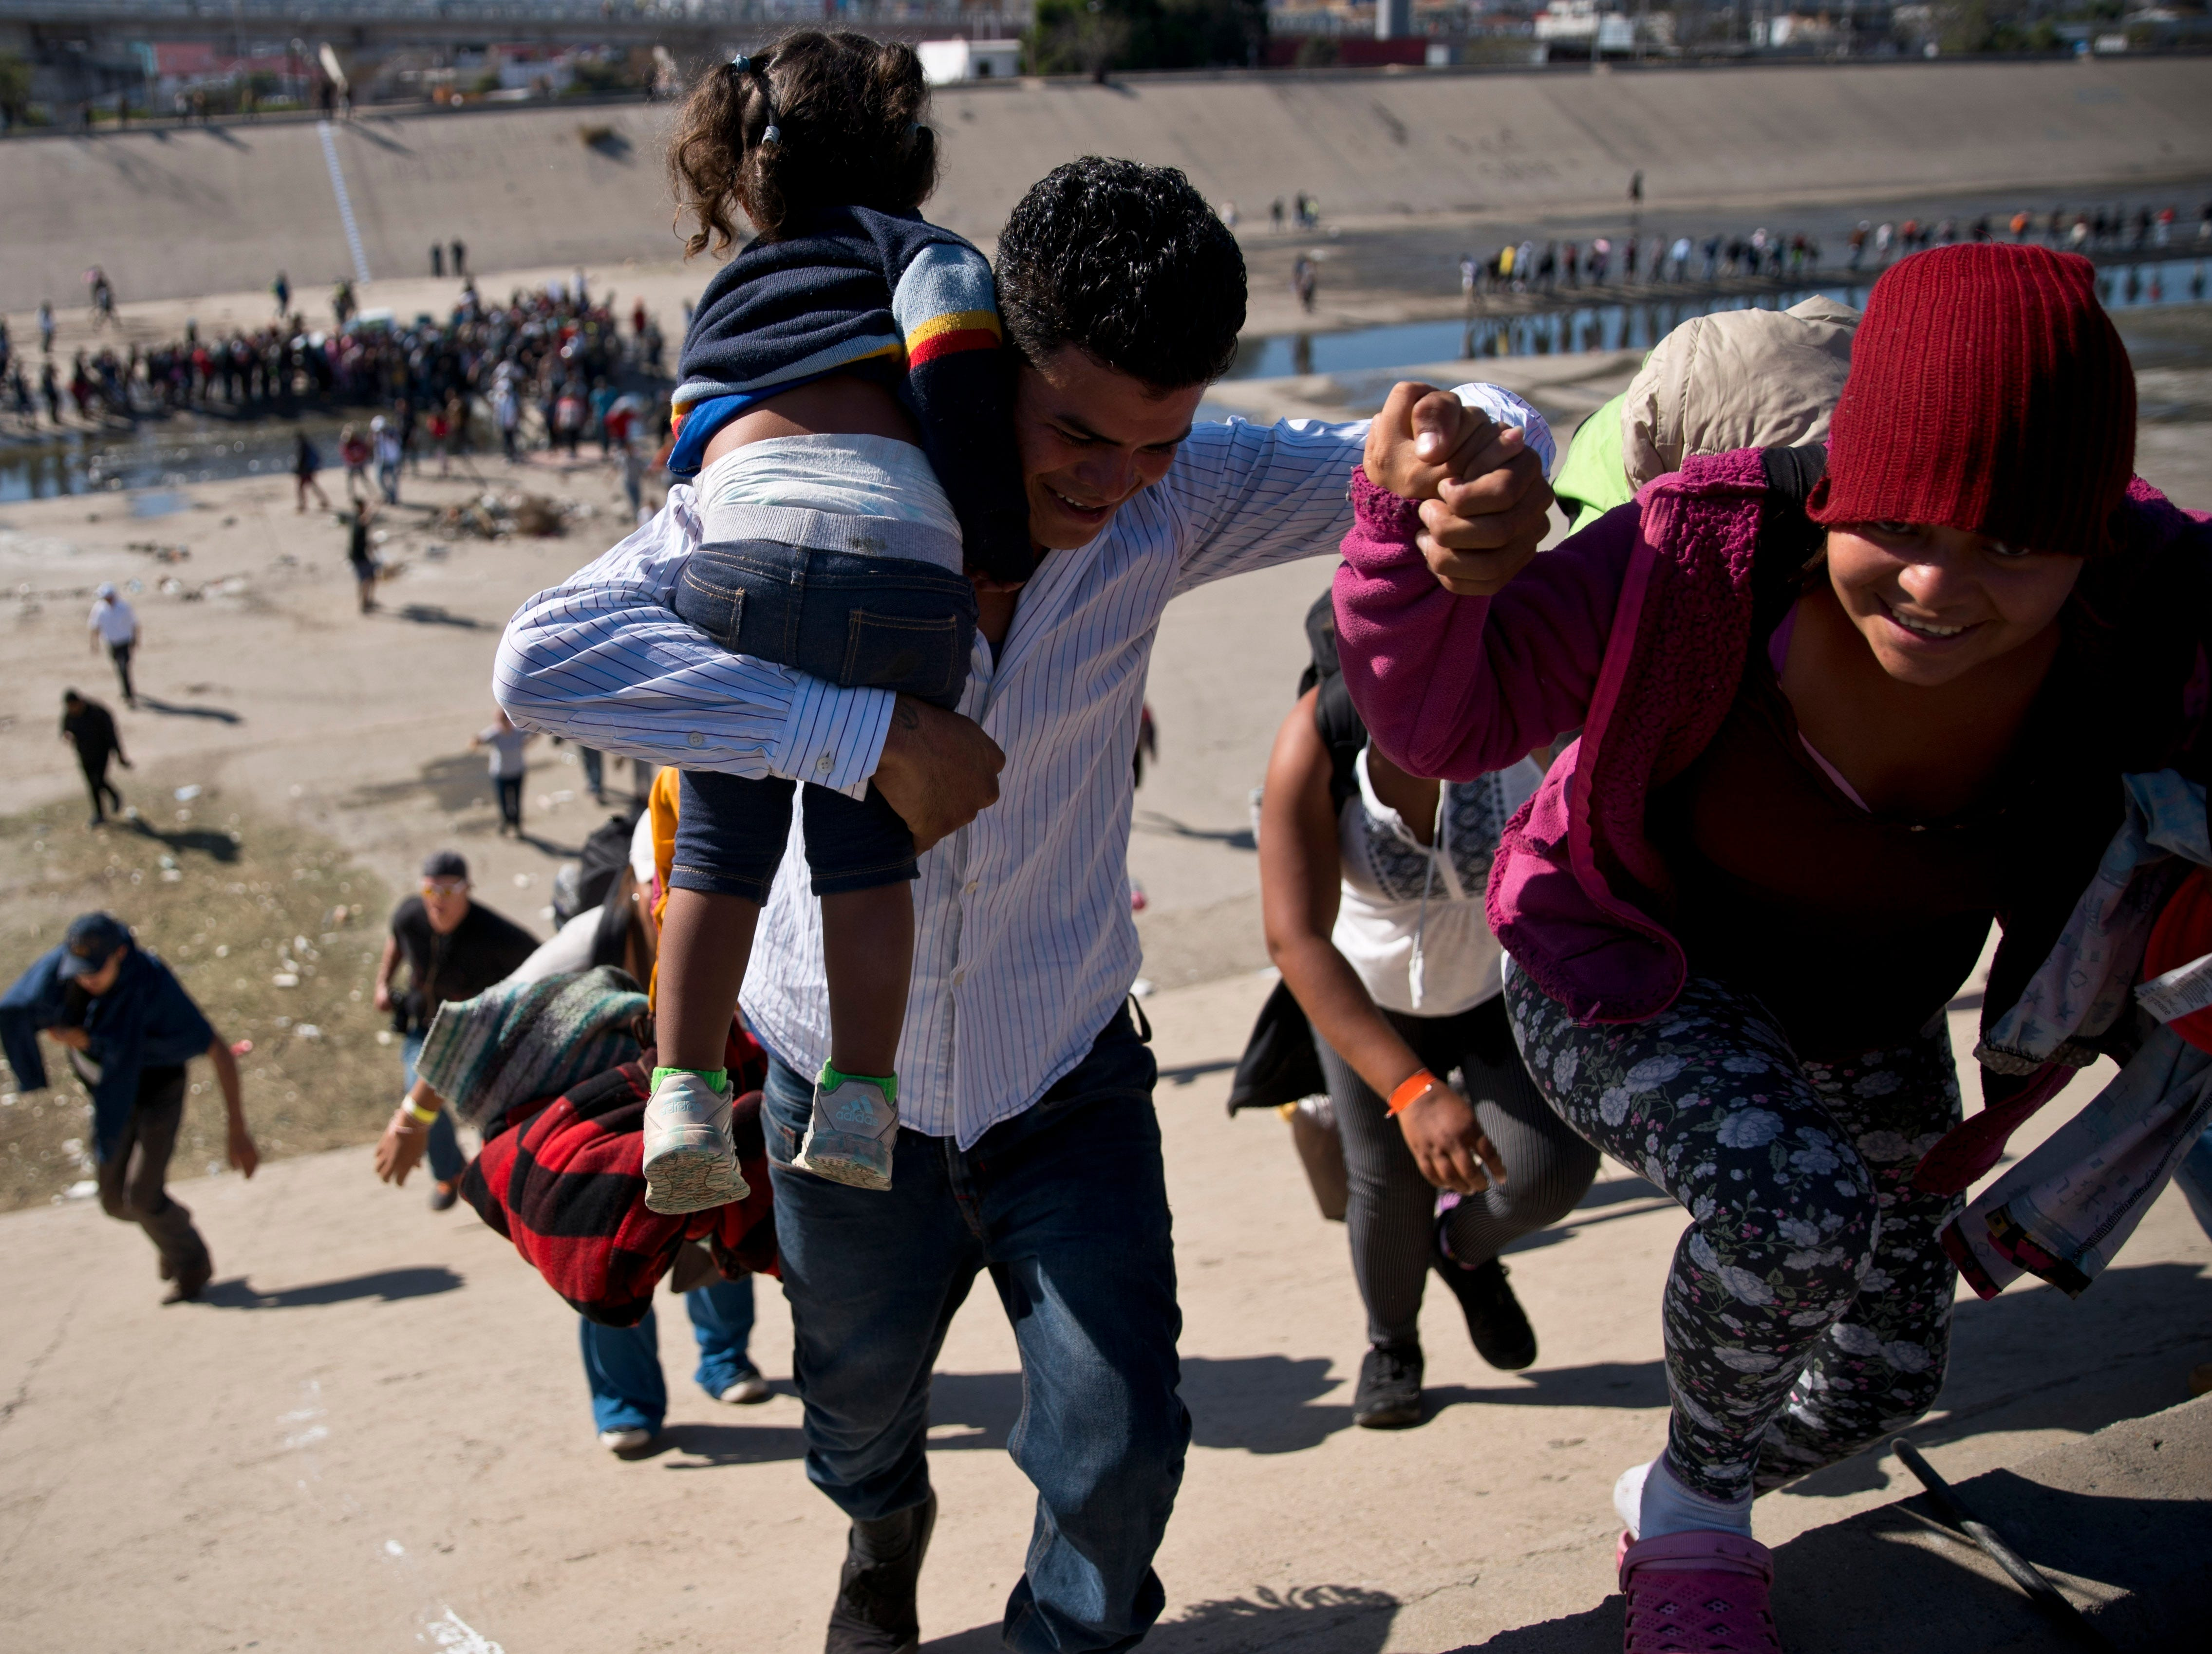 Migrants walk up a riverbank at the Mexico-U.S. border after getting past a line of Mexican police at the Chaparral border crossing in Tijuana, Mexico, Nov. 25, 2018, as they try to reach the U.S.